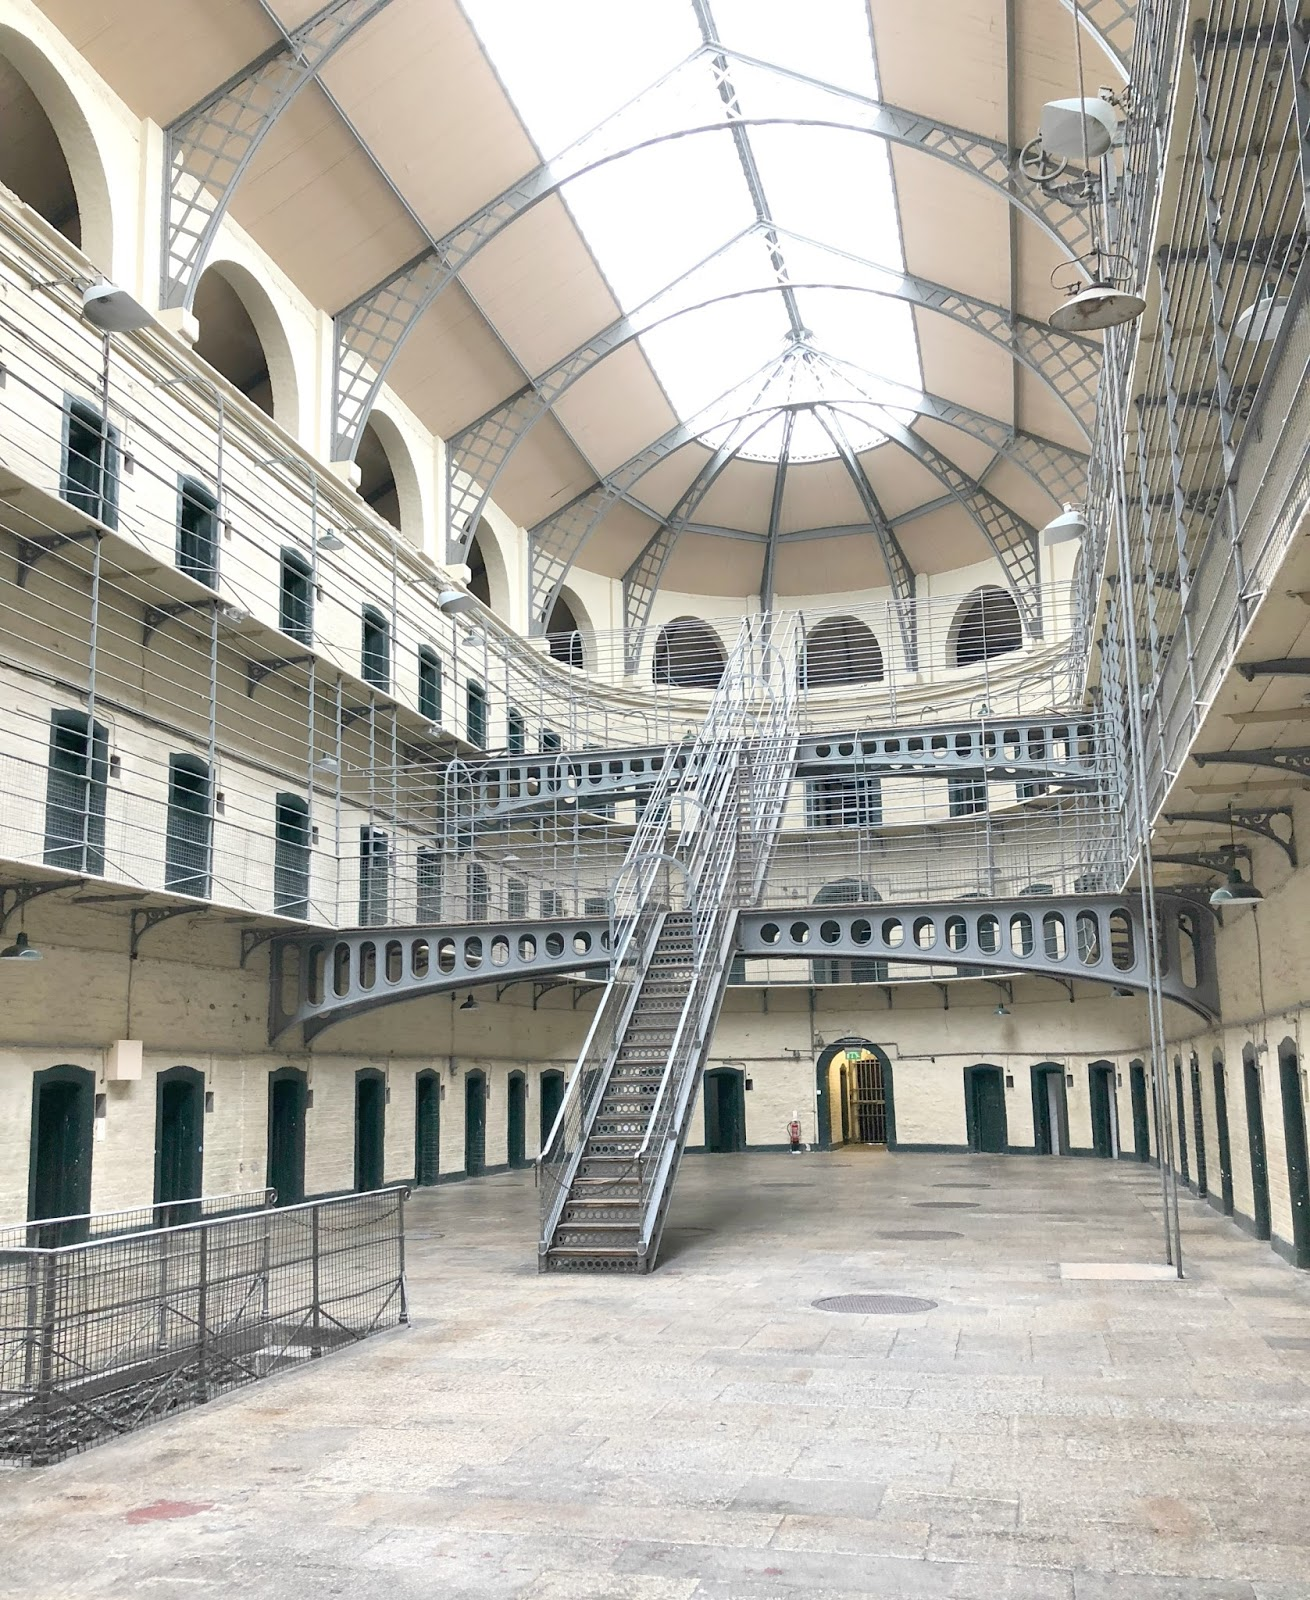 How to Spend a Weekend in Dublin - Kilmainham Gaol